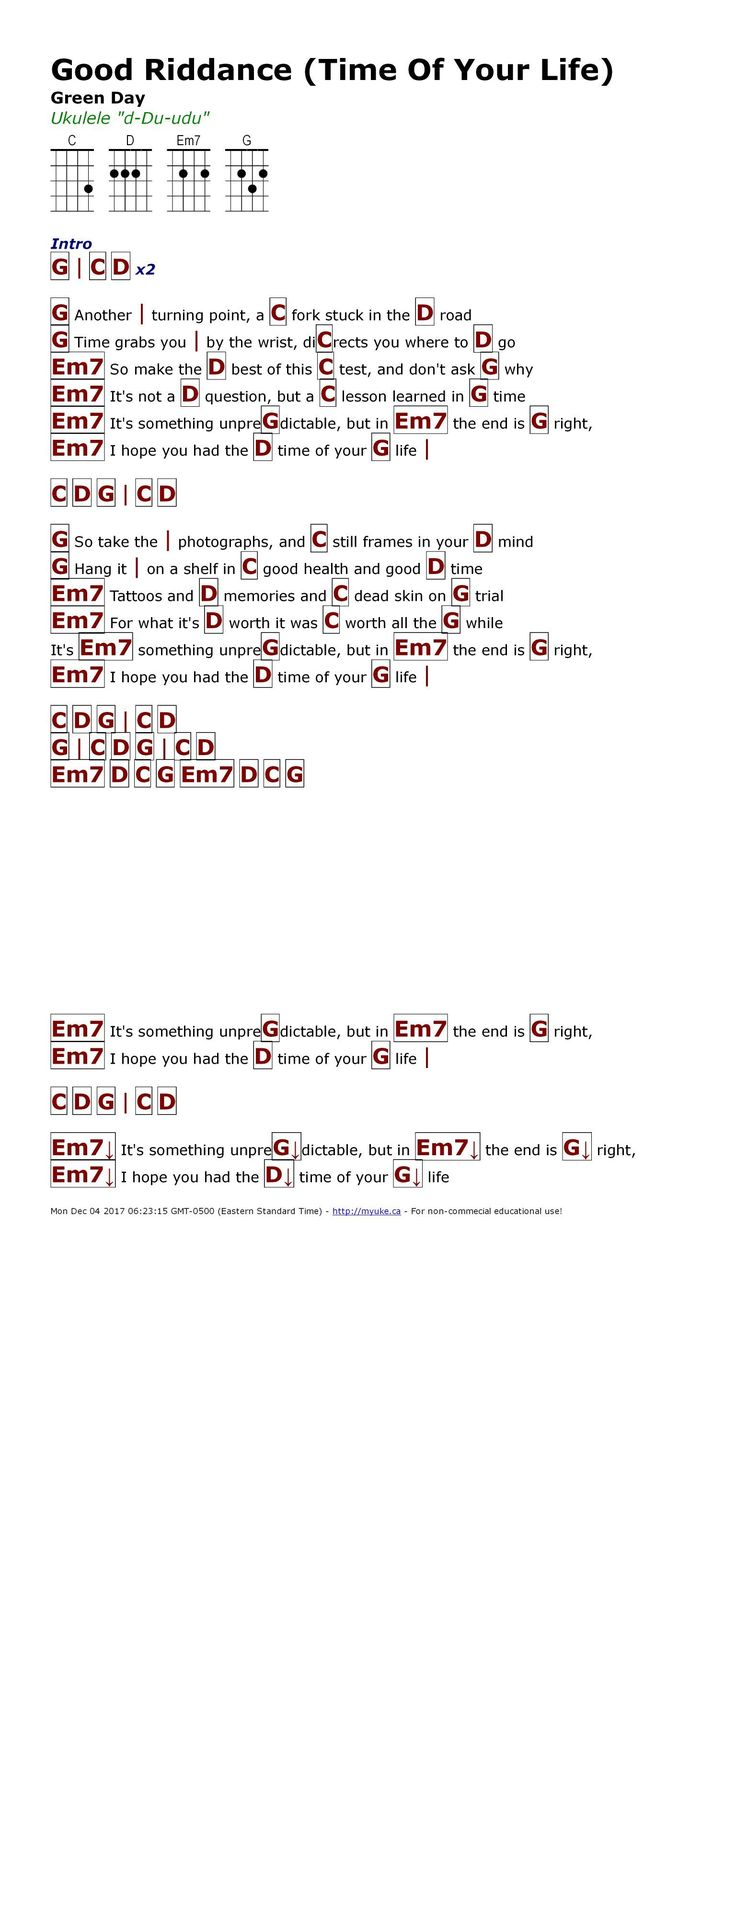 Green day time of your life guitar chords gallery guitar chords die besten 25 green day good riddance ideen auf pinterest green good riddance green day httpmyuke hexwebz Image collections